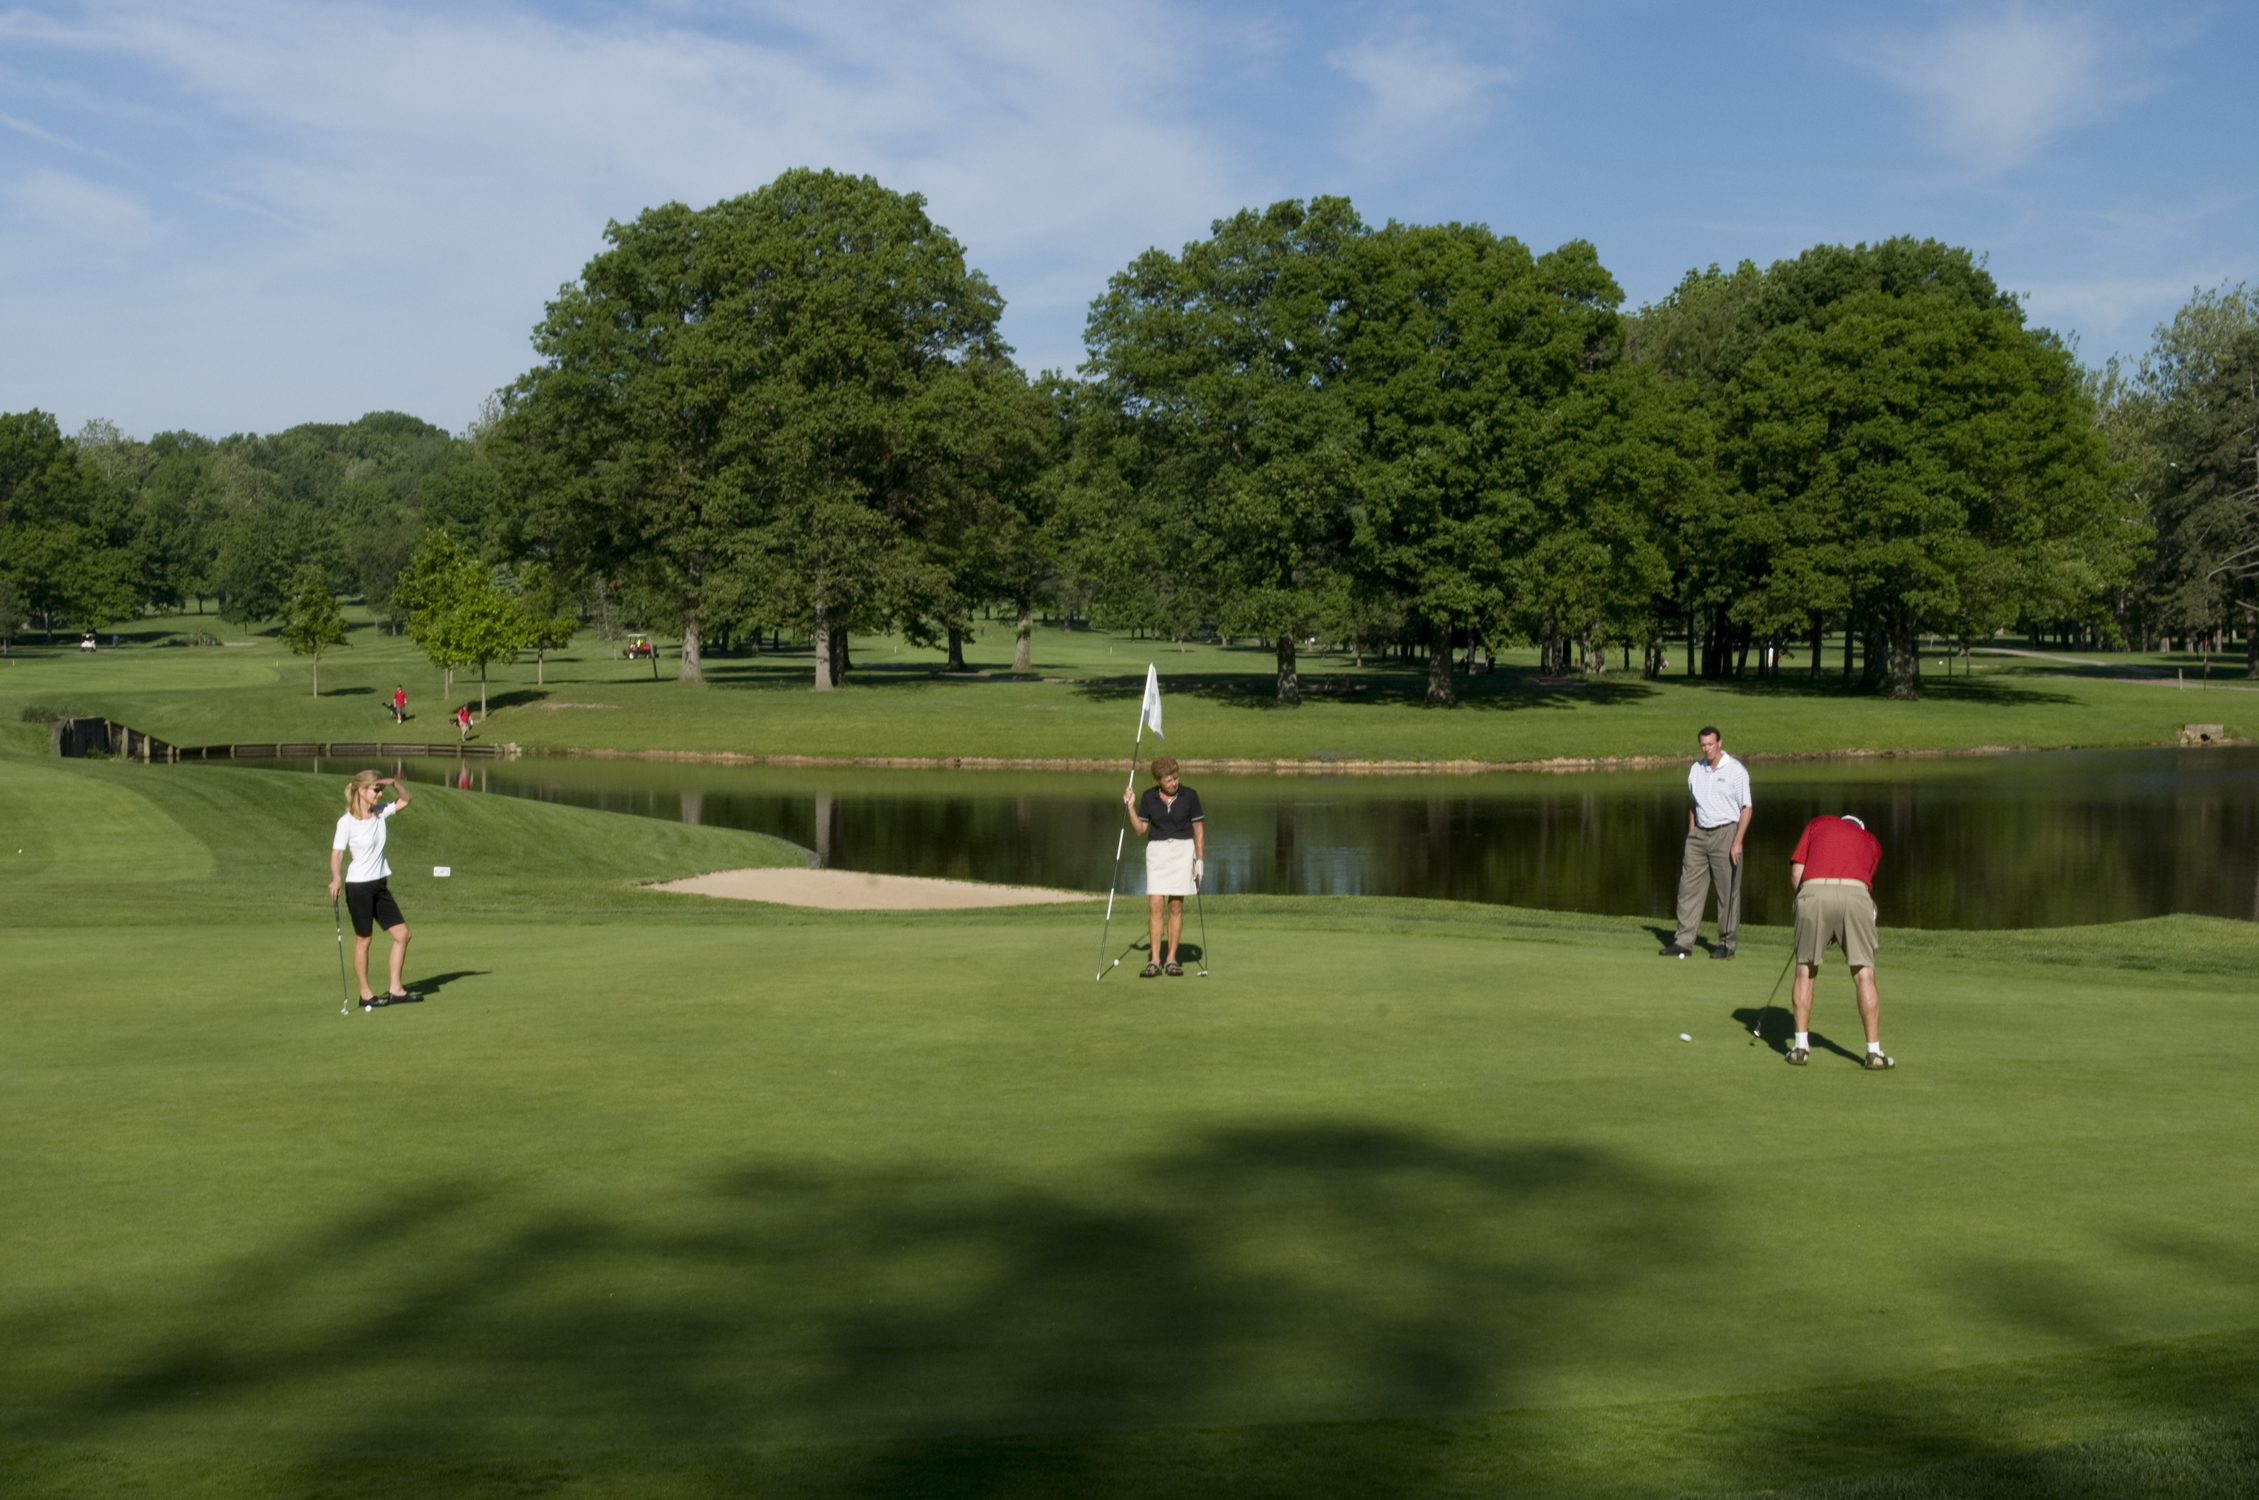 CLEVELAND METROPARKS 2014 GOLF SEASON TEES OFF MARCH 12